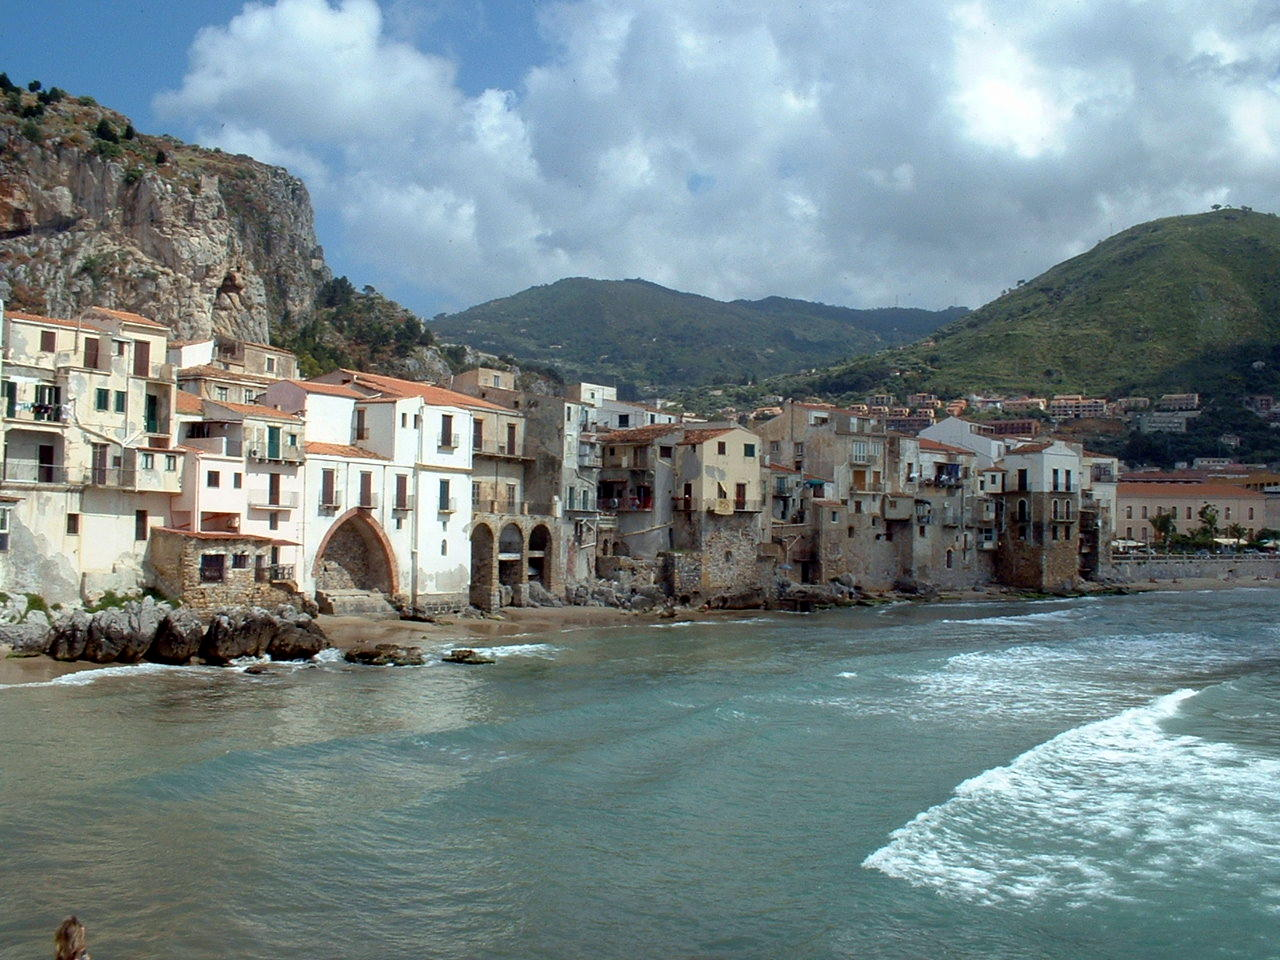 Cefalu Italy  City pictures : TrekDigest: Cefalu, Sicily, Italy